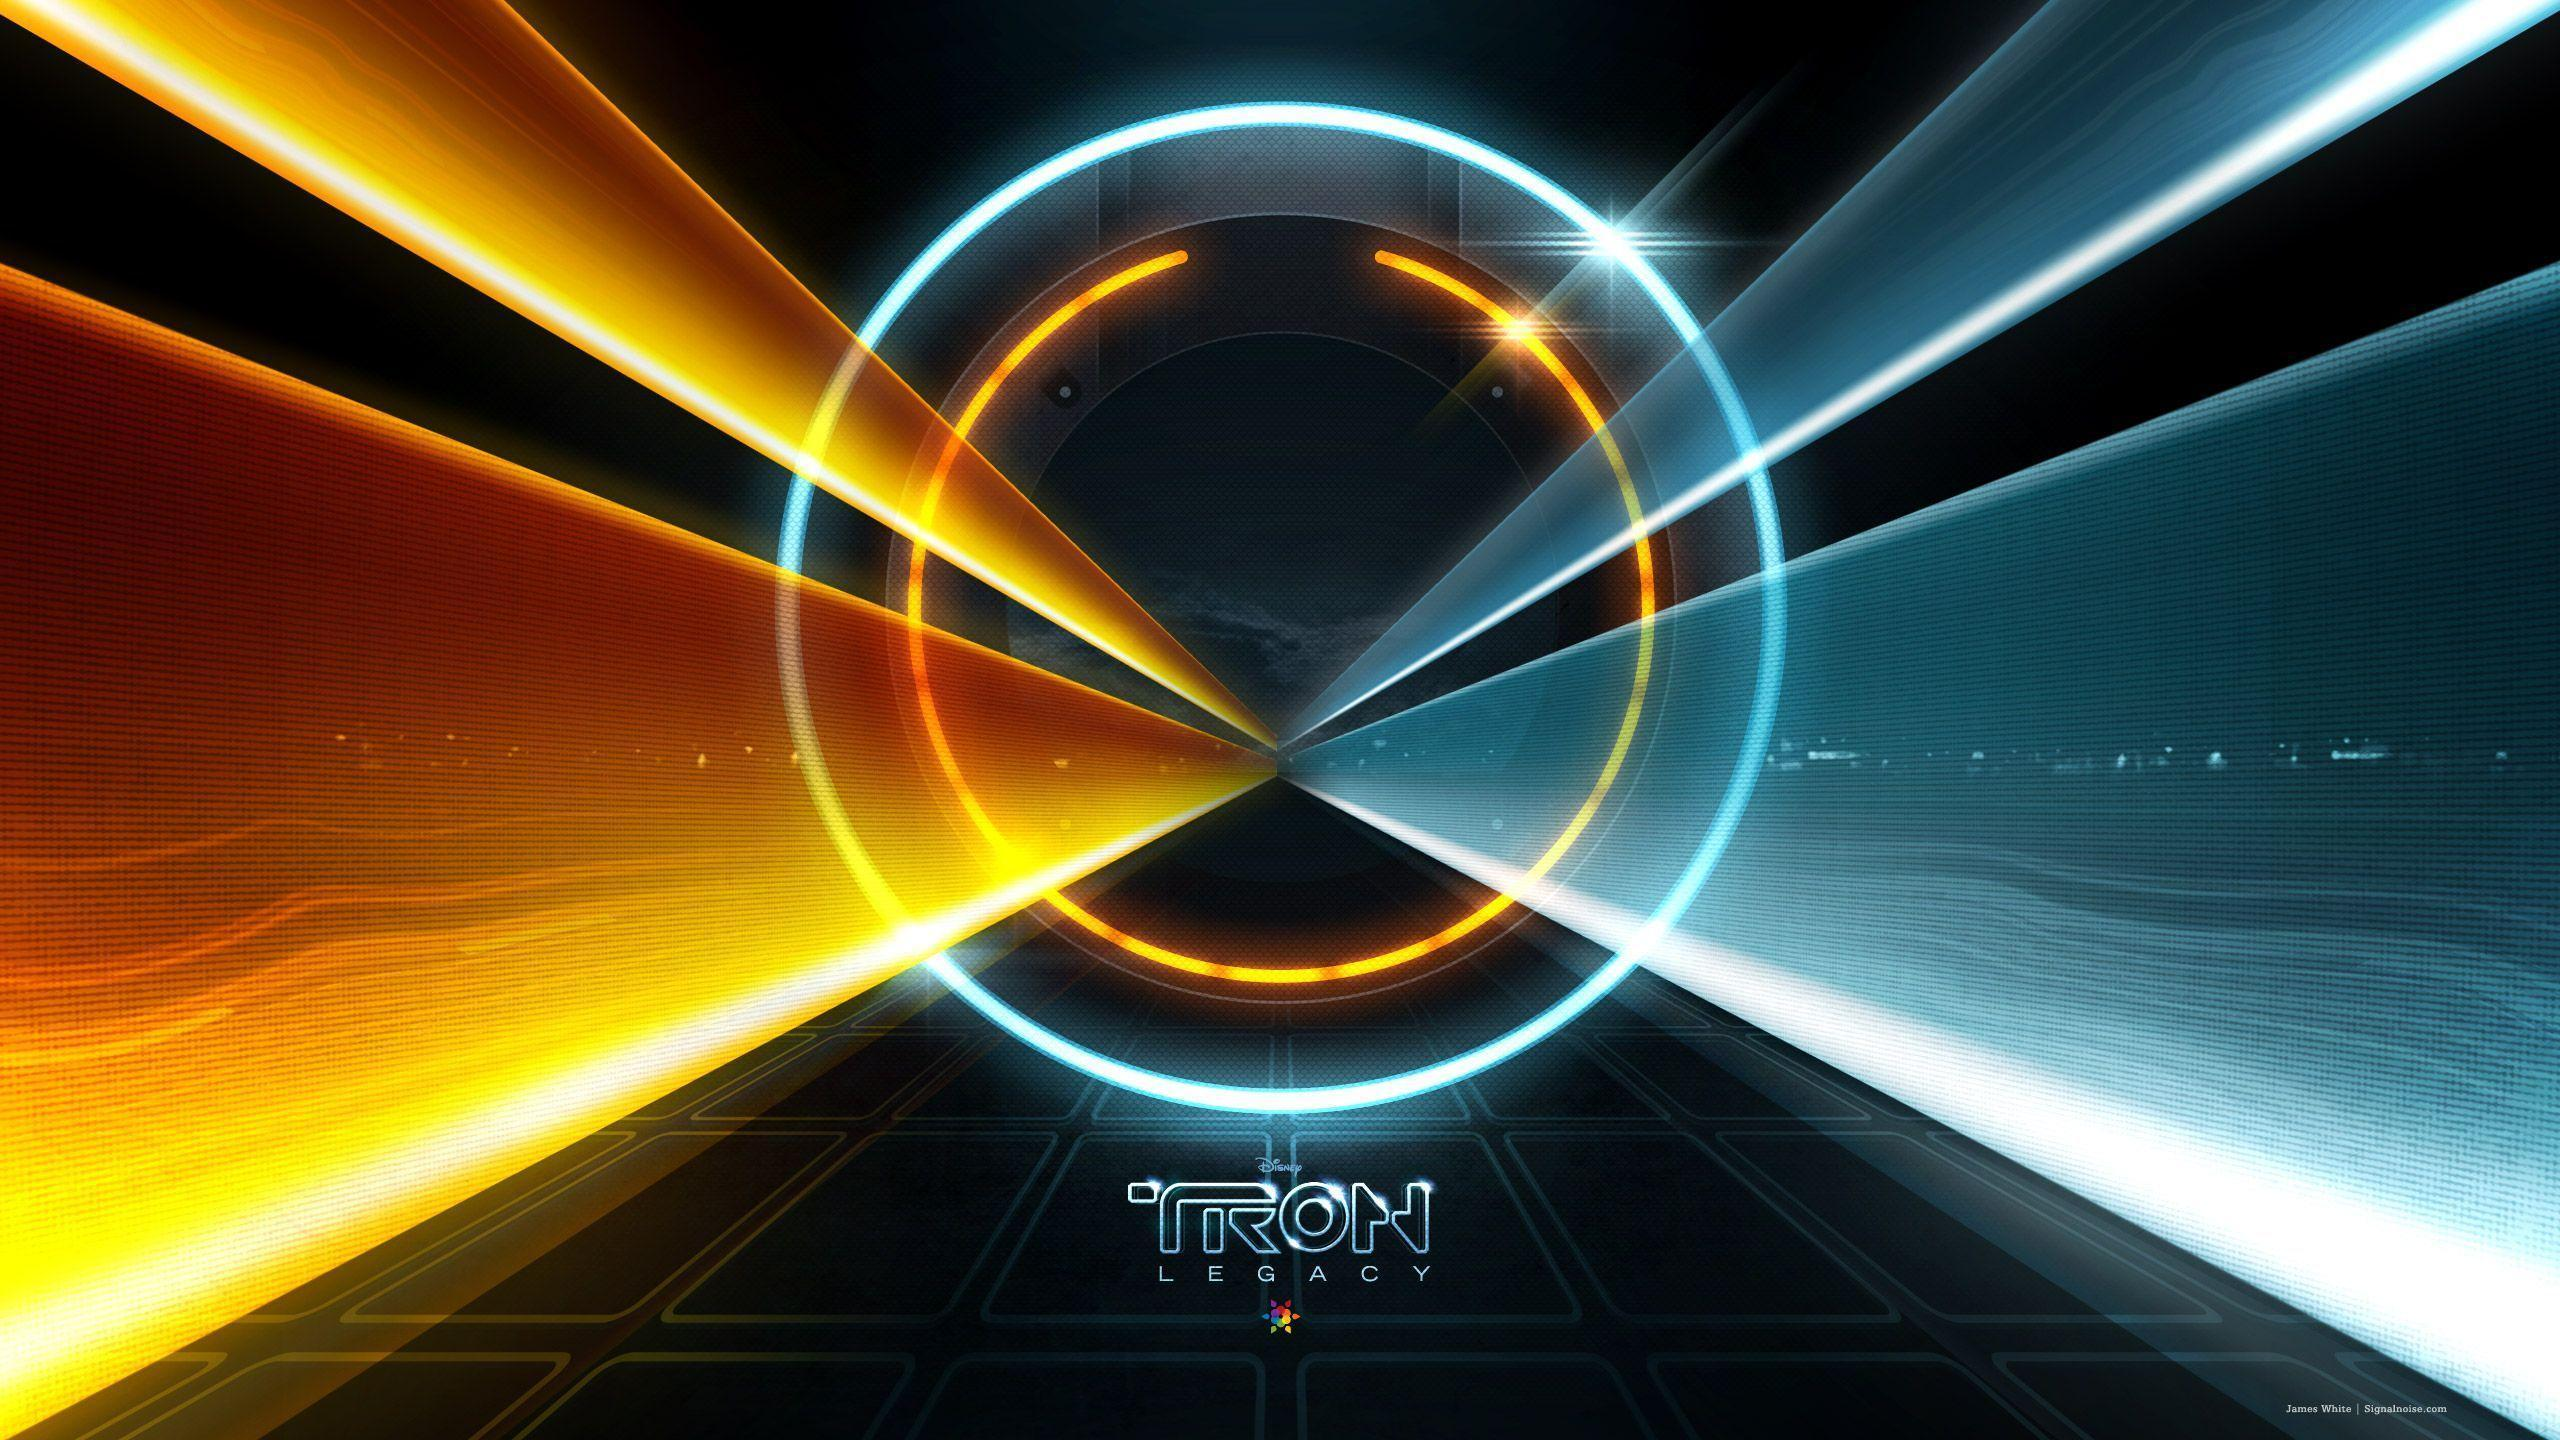 awesome tronlegacy wallpapers - photo #24